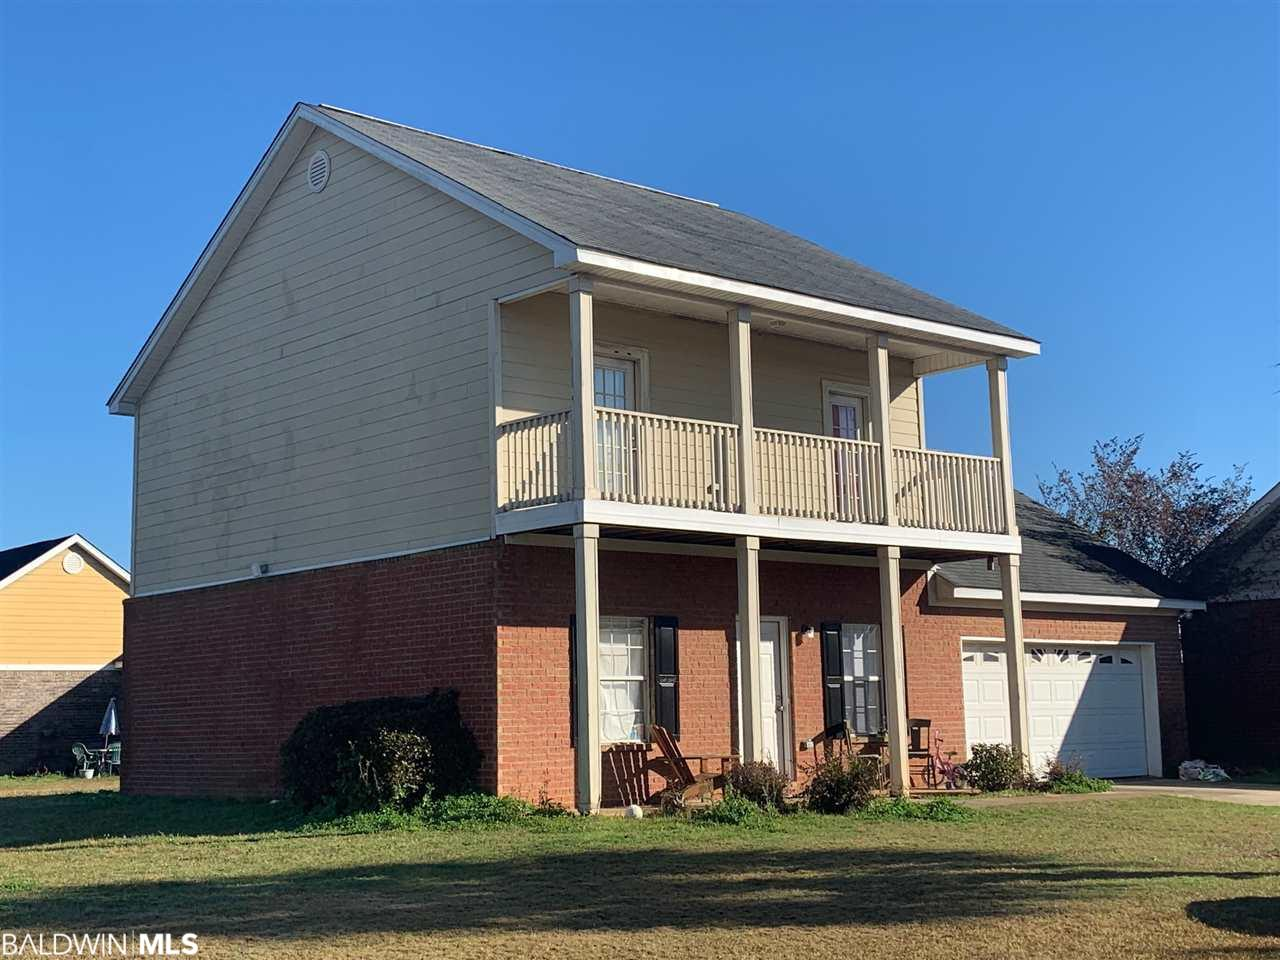 ATTENTION INVESTORS! TENANT OCCUPIED. Nice Two Story Home on a corner lot located in a Great Location Convenient to Hwy 59 and the Foley Beach Expressway.